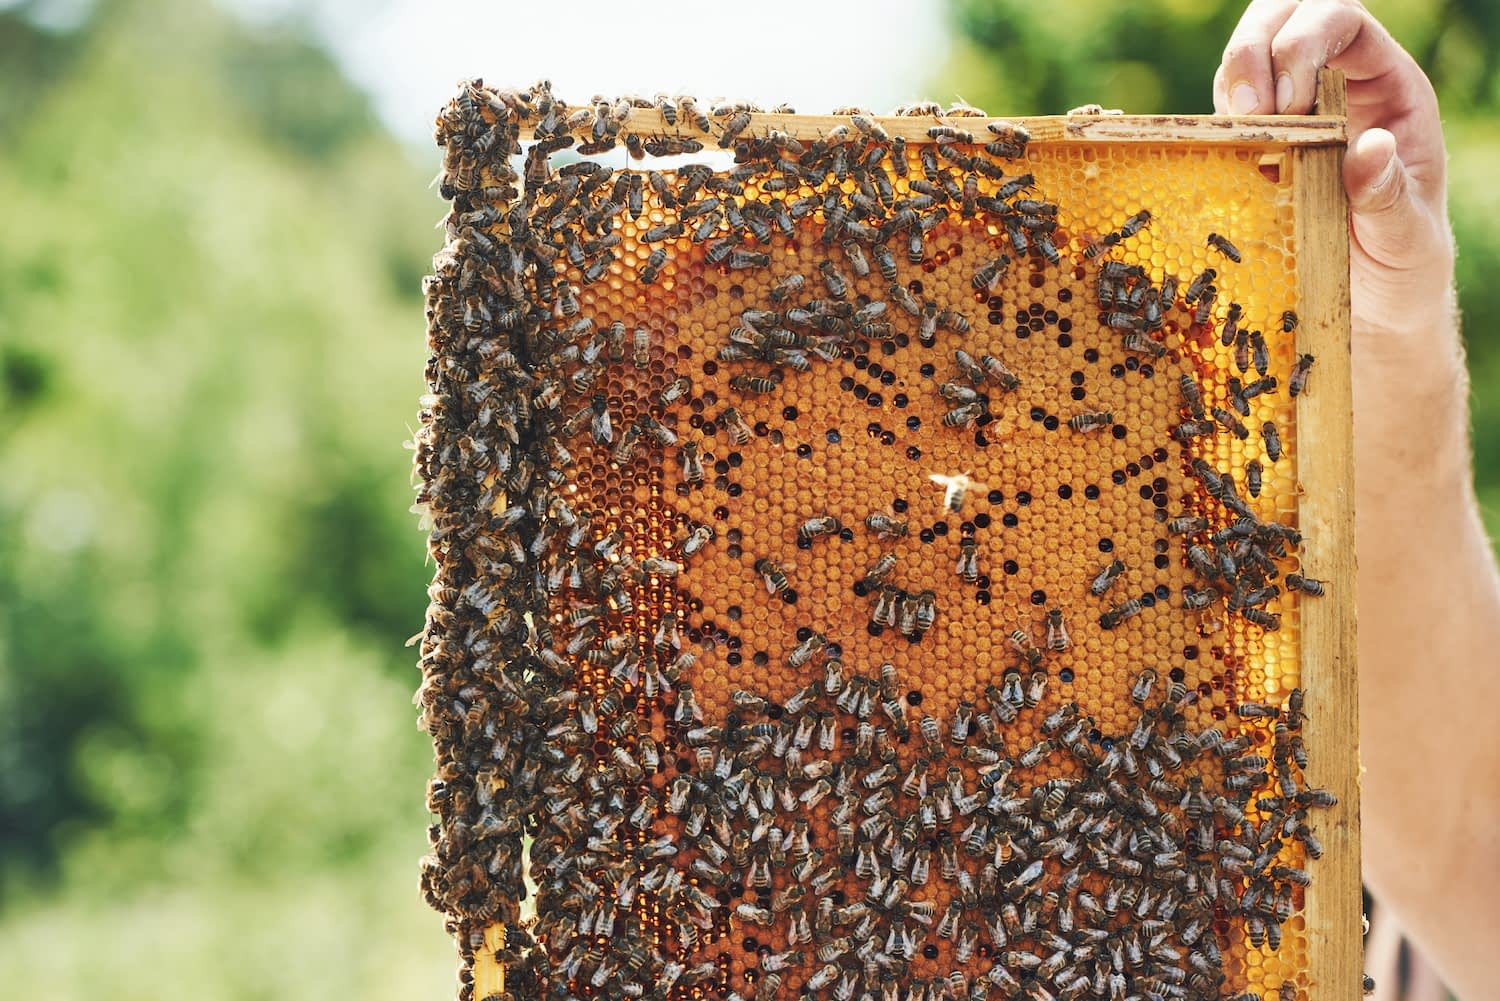 Bees gather on a slab of fresh honeycomb